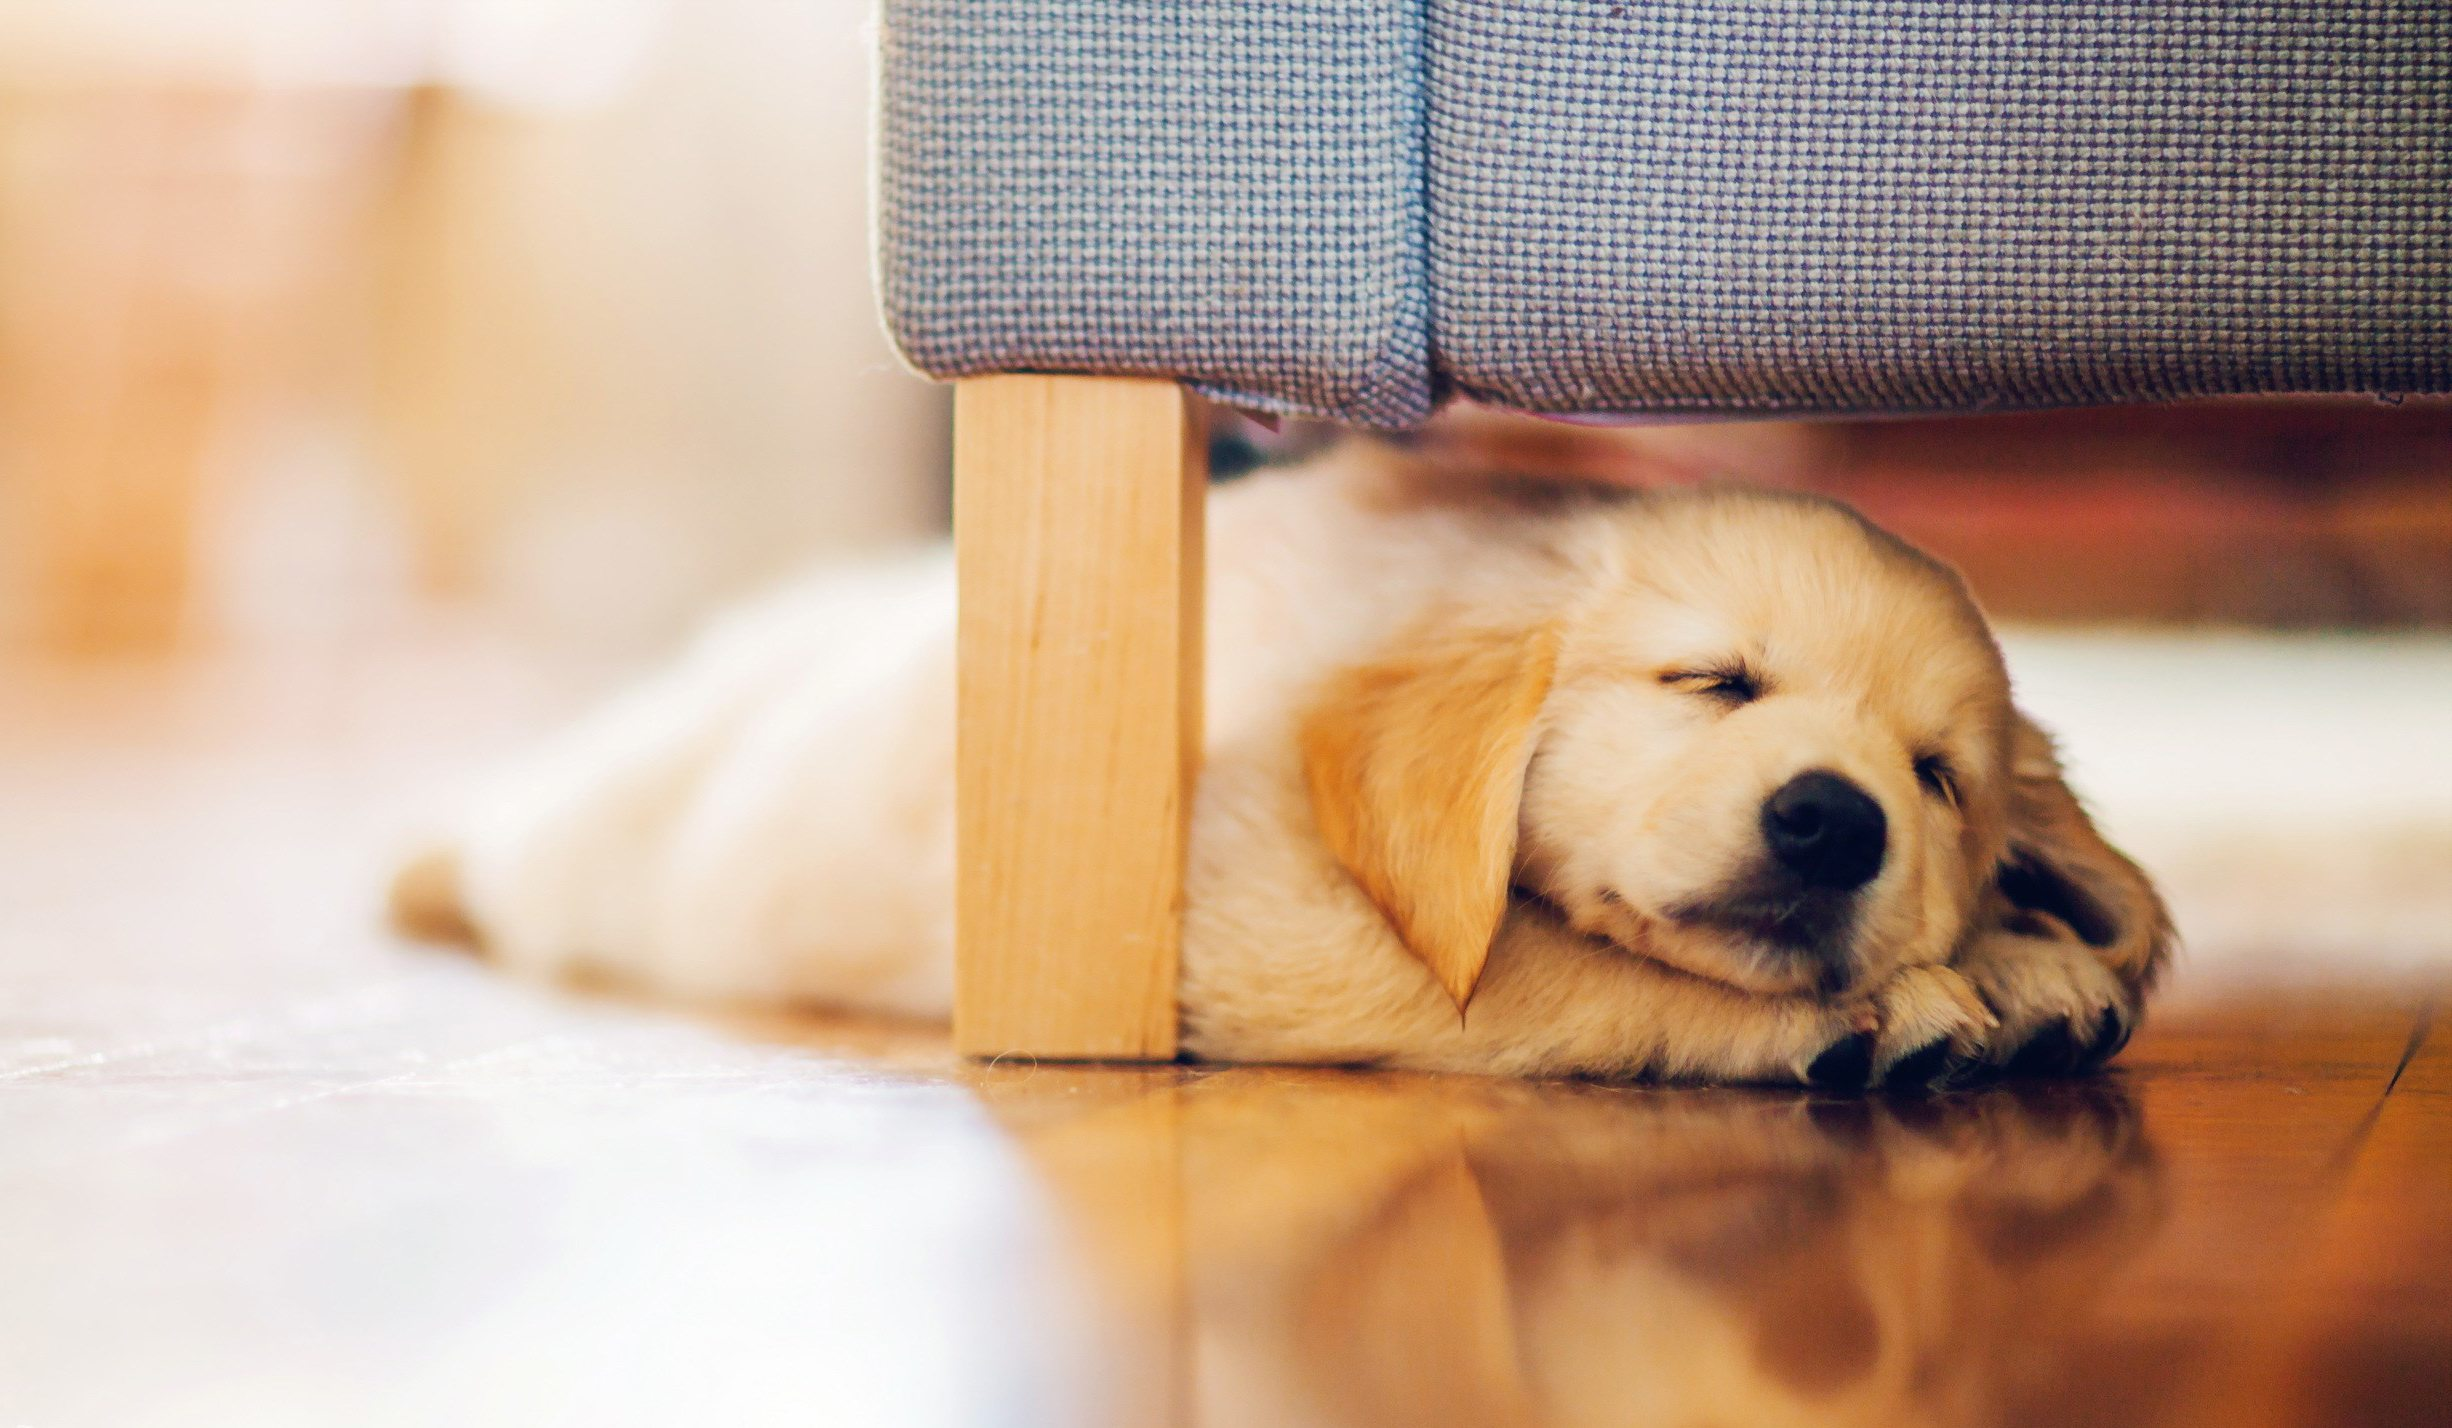 6959055-dog-puppy-retriever